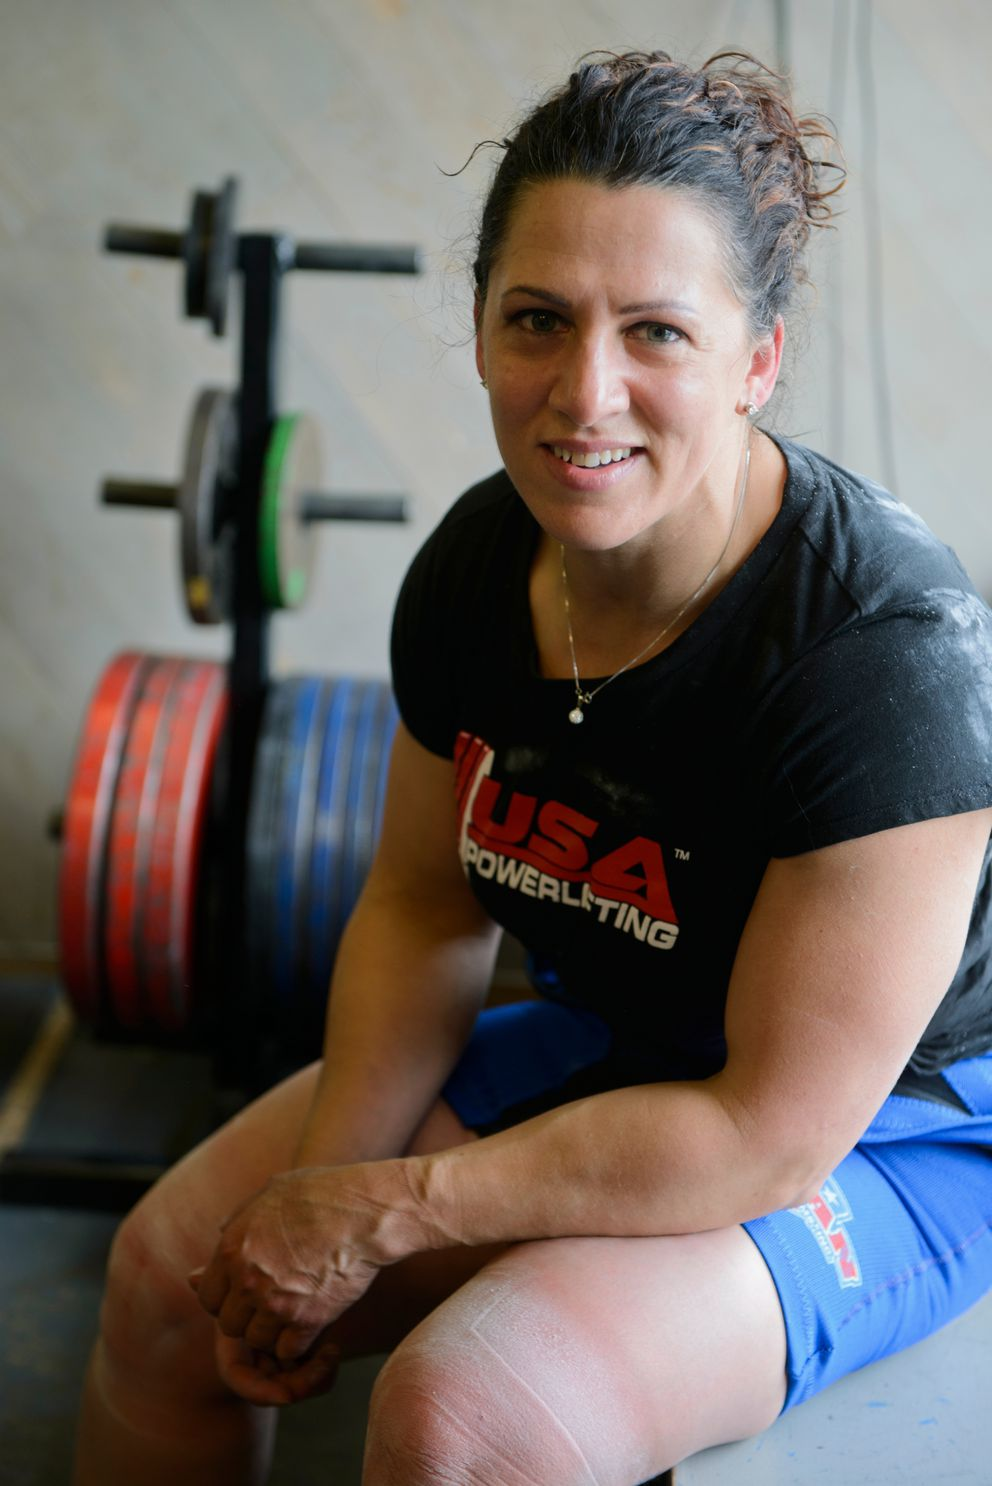 Priscilla Ribic has won 15 world championships in her Hall of Fame powerlifting career and currently holds four world records. (Marc Lester / Alaska Dispatch News)